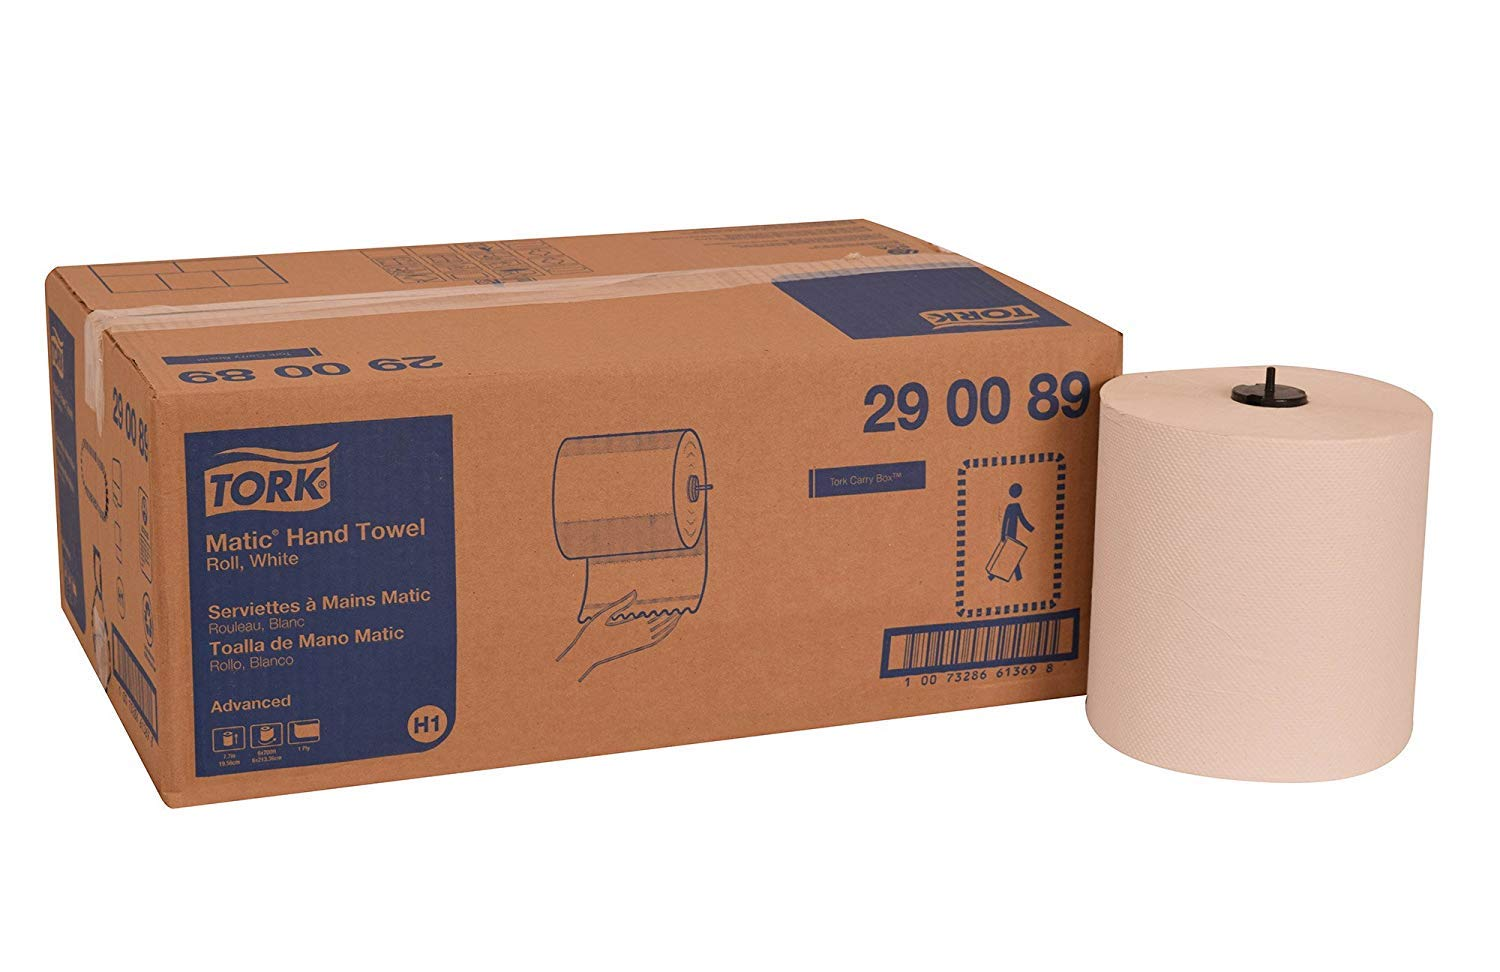 Tork 290089 Advanced Matic Paper Hand Towel Roll, 1-Ply, 7.7'' Width x 900' Length, White (Case of 6 Rolls, 700 Feet per Roll, 4,200 Feet) (12 Rolls)